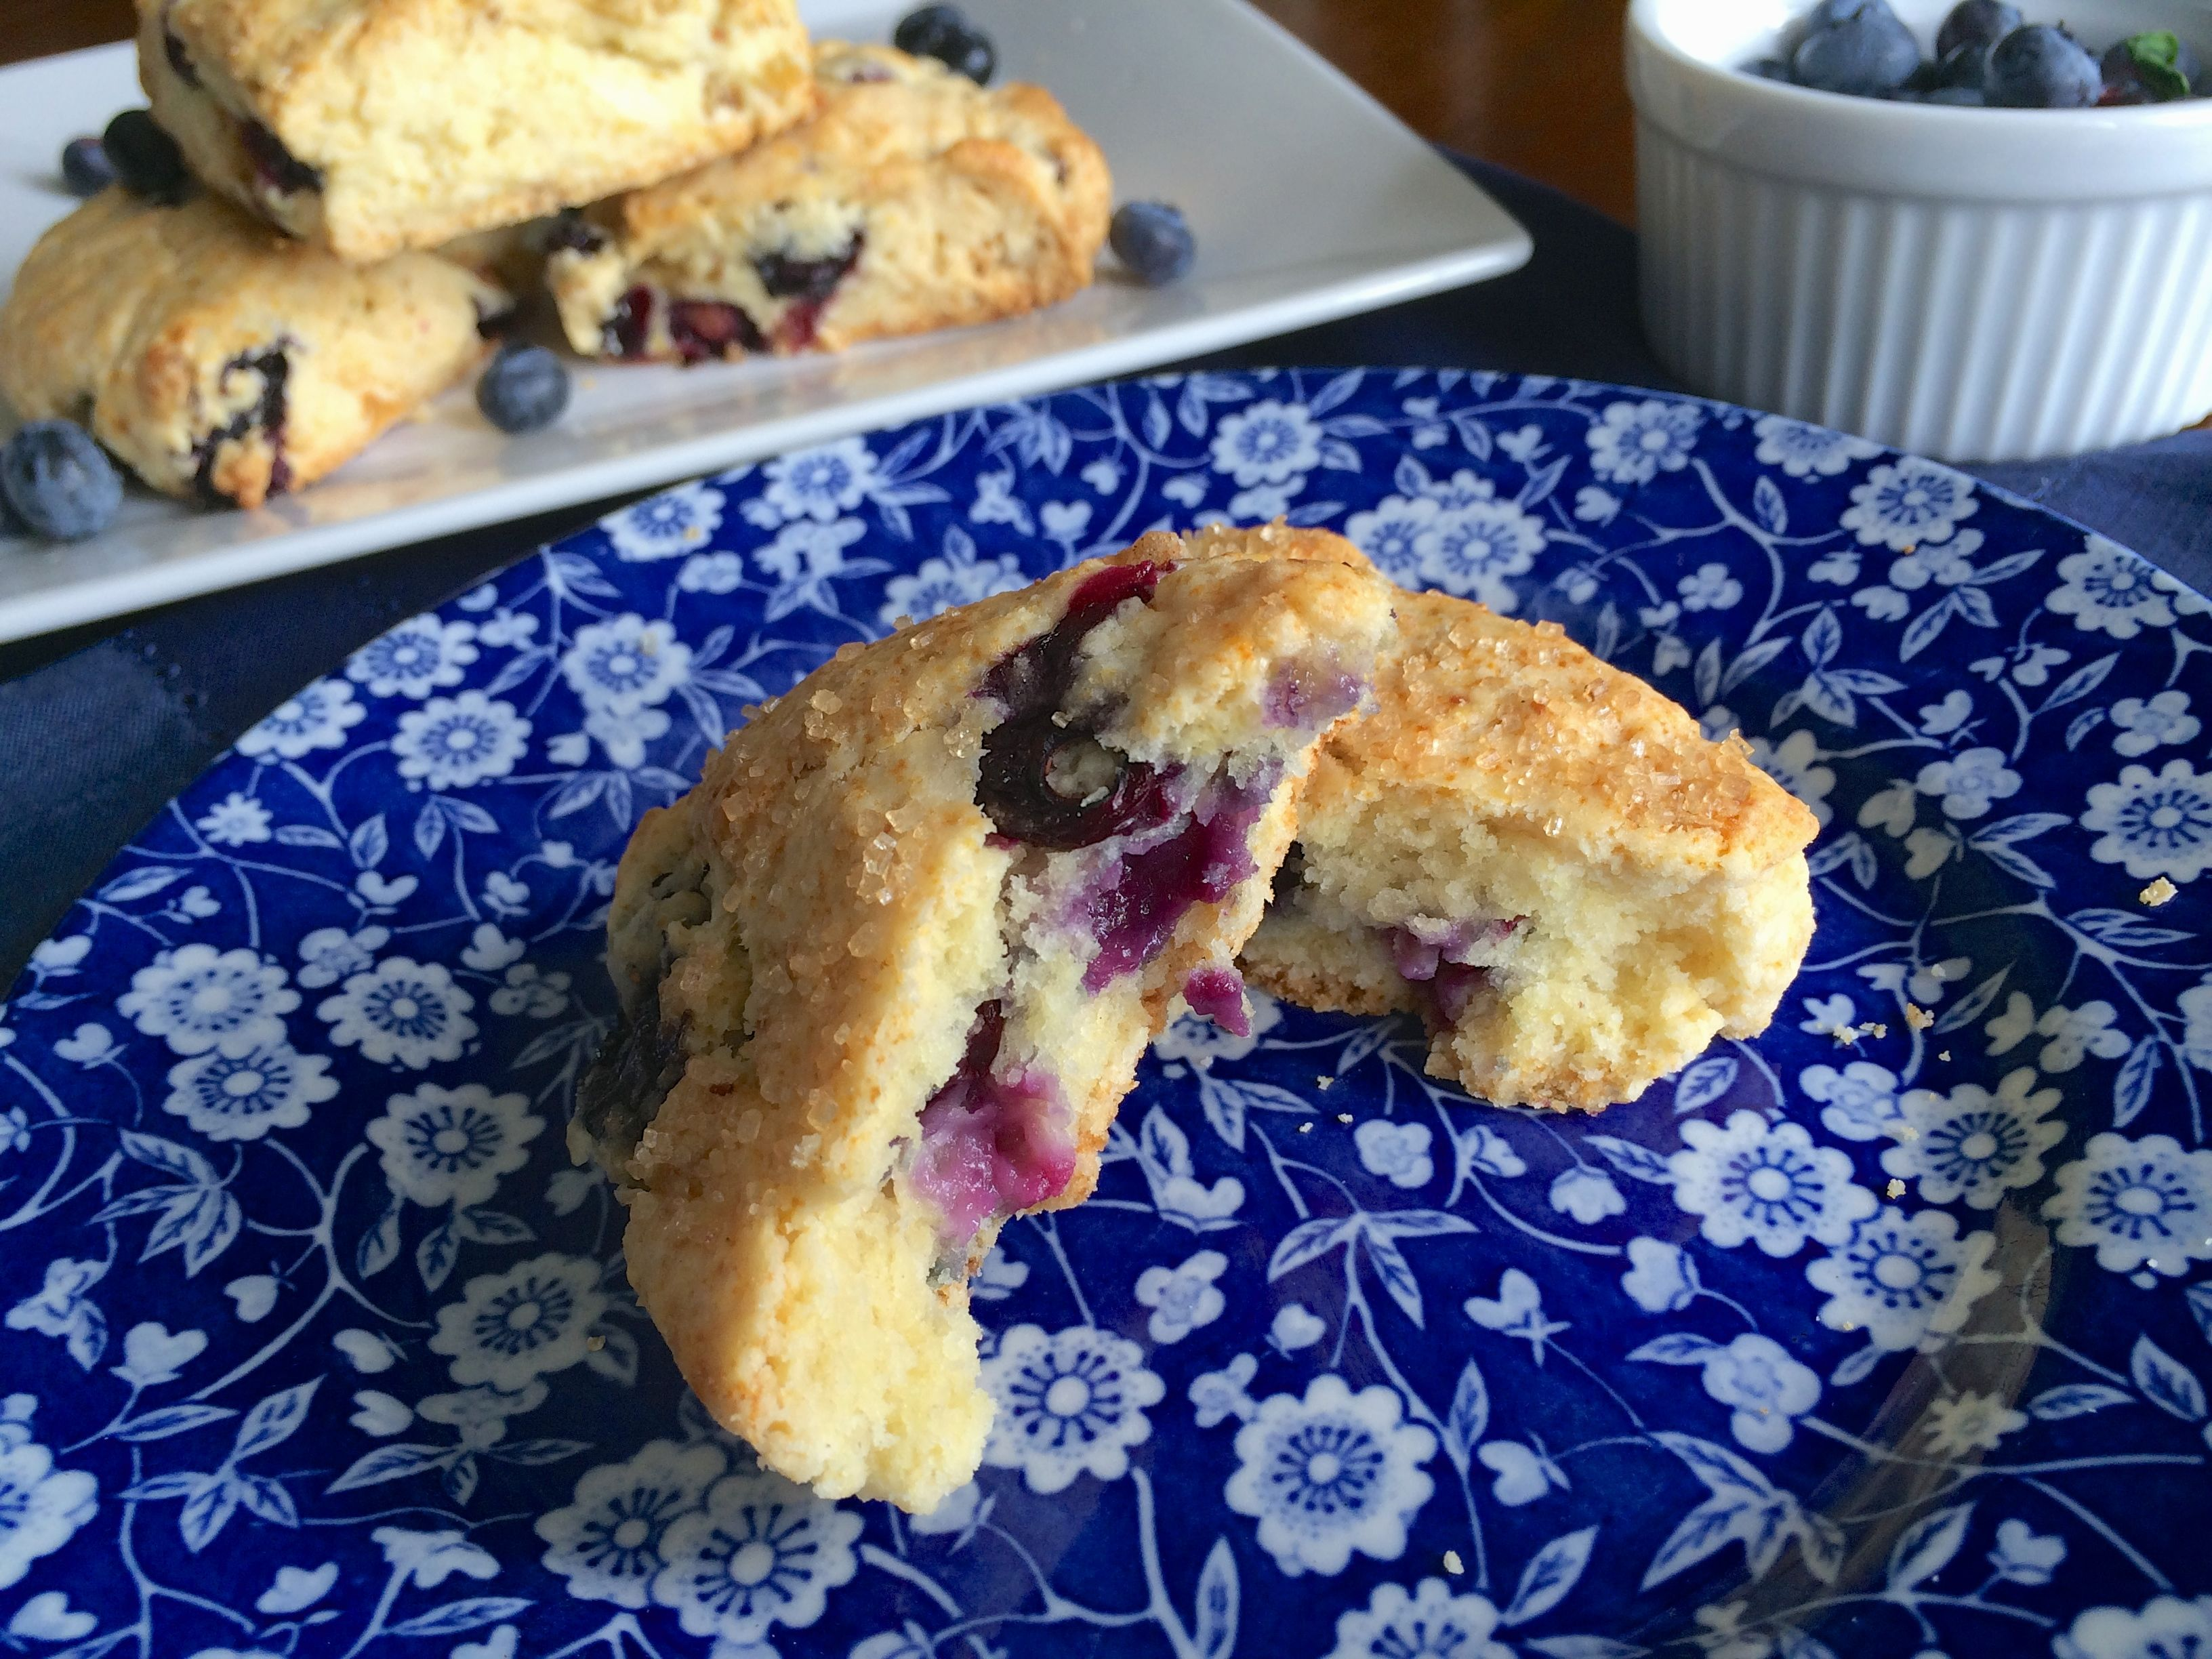 Blueberry Scone Plated